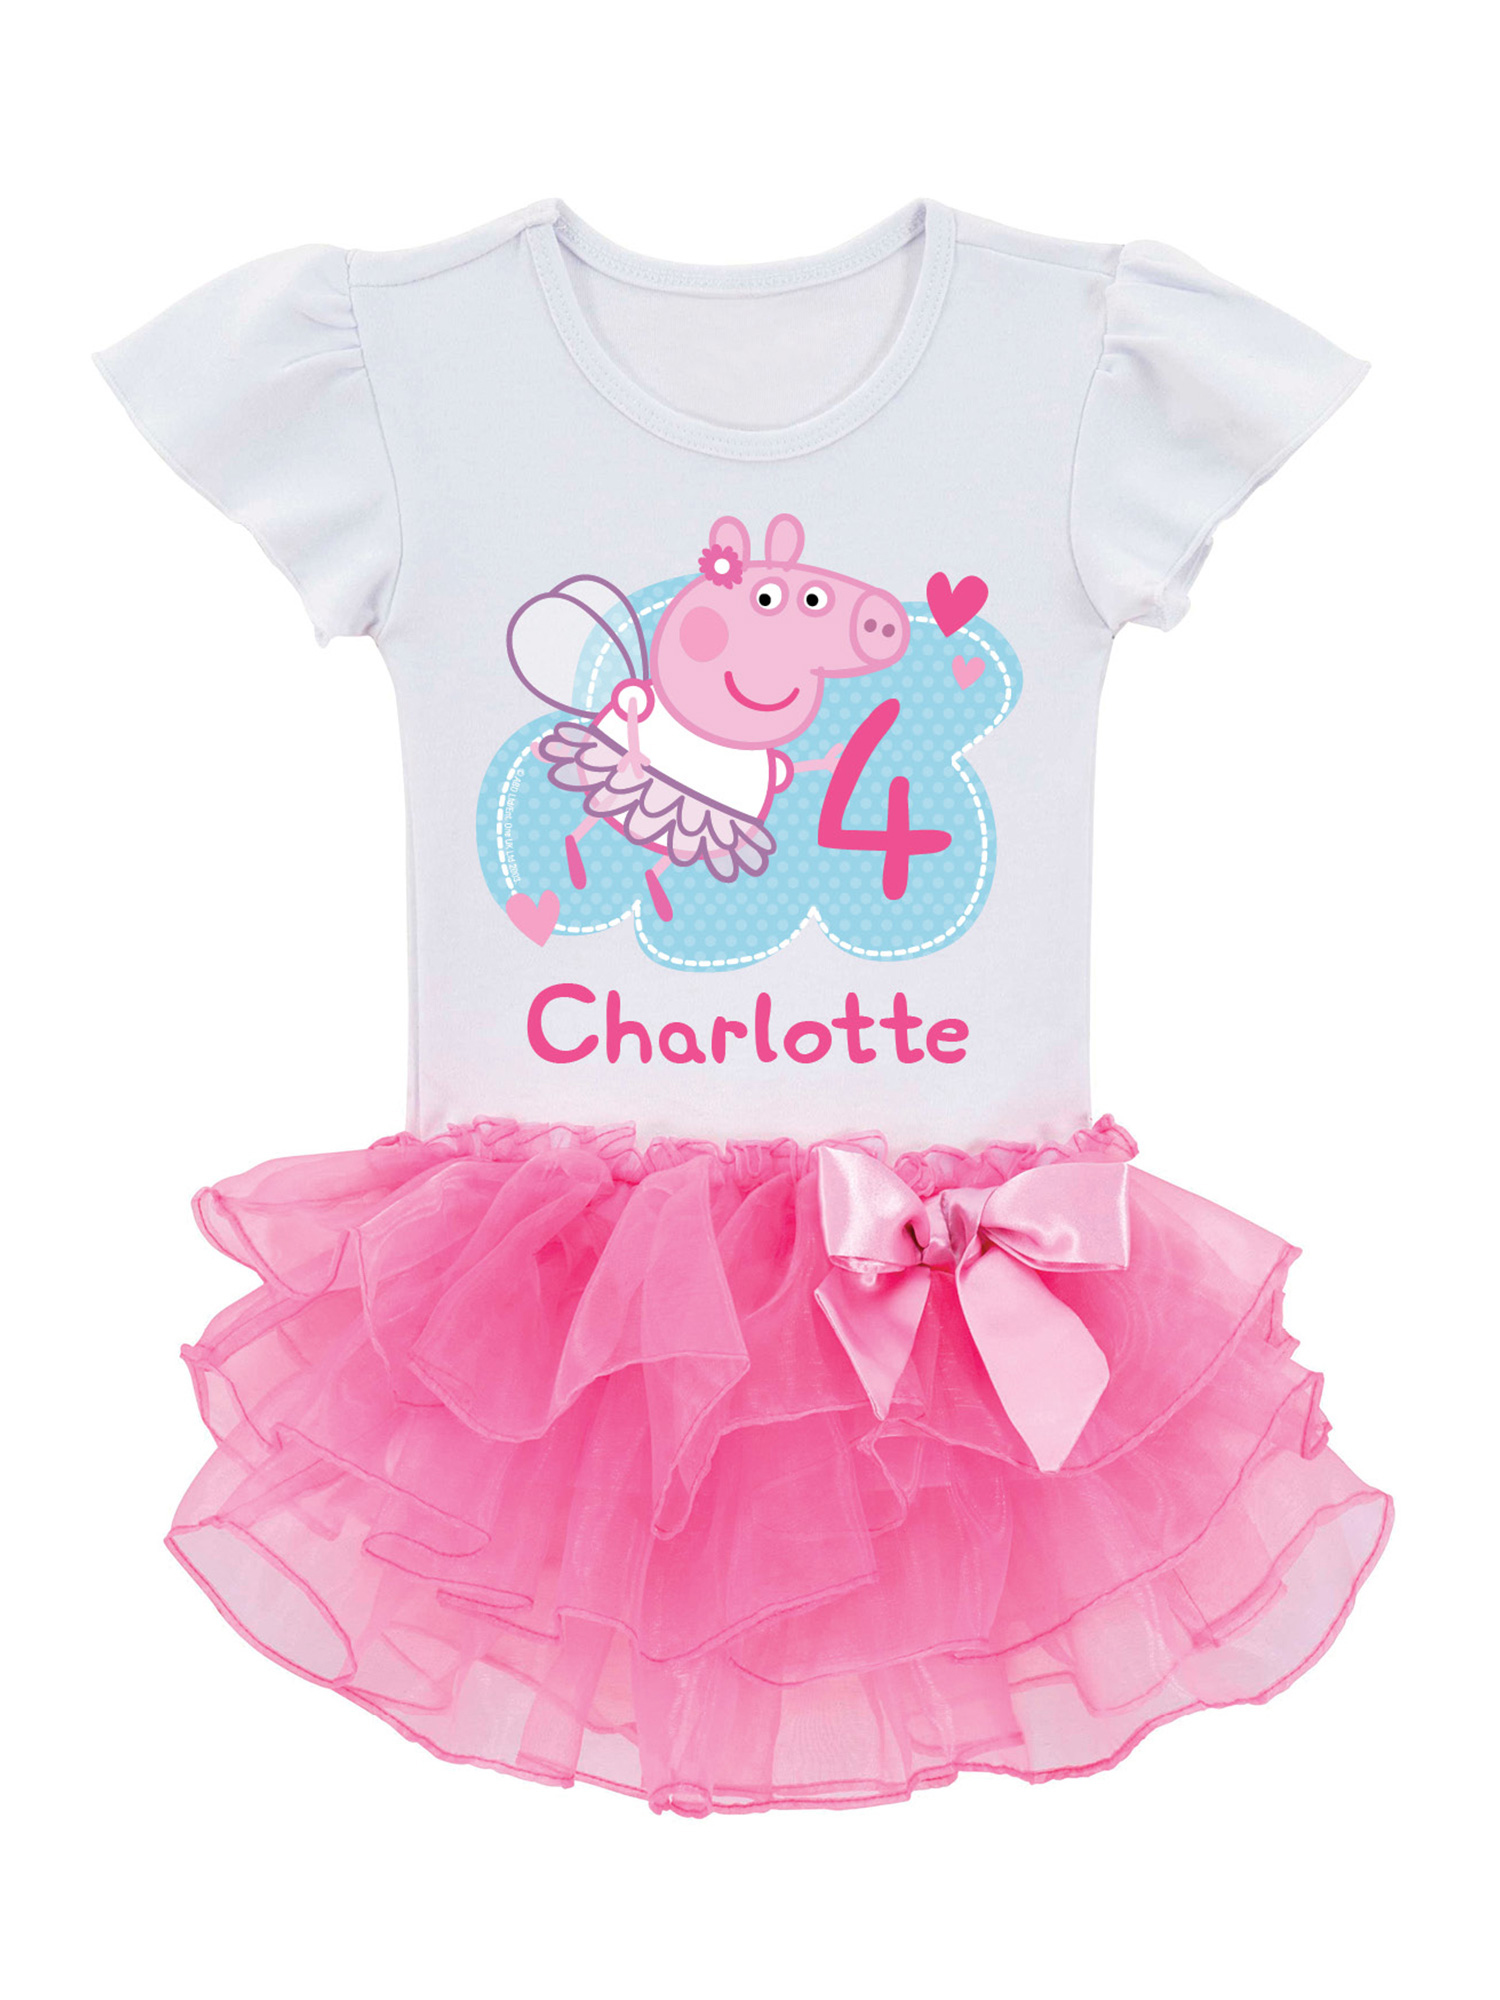 Personalized Peppa Pig Toddler Girls' Birthday Tutu T-Shirt -2T, 3T, 4T, 5/6T